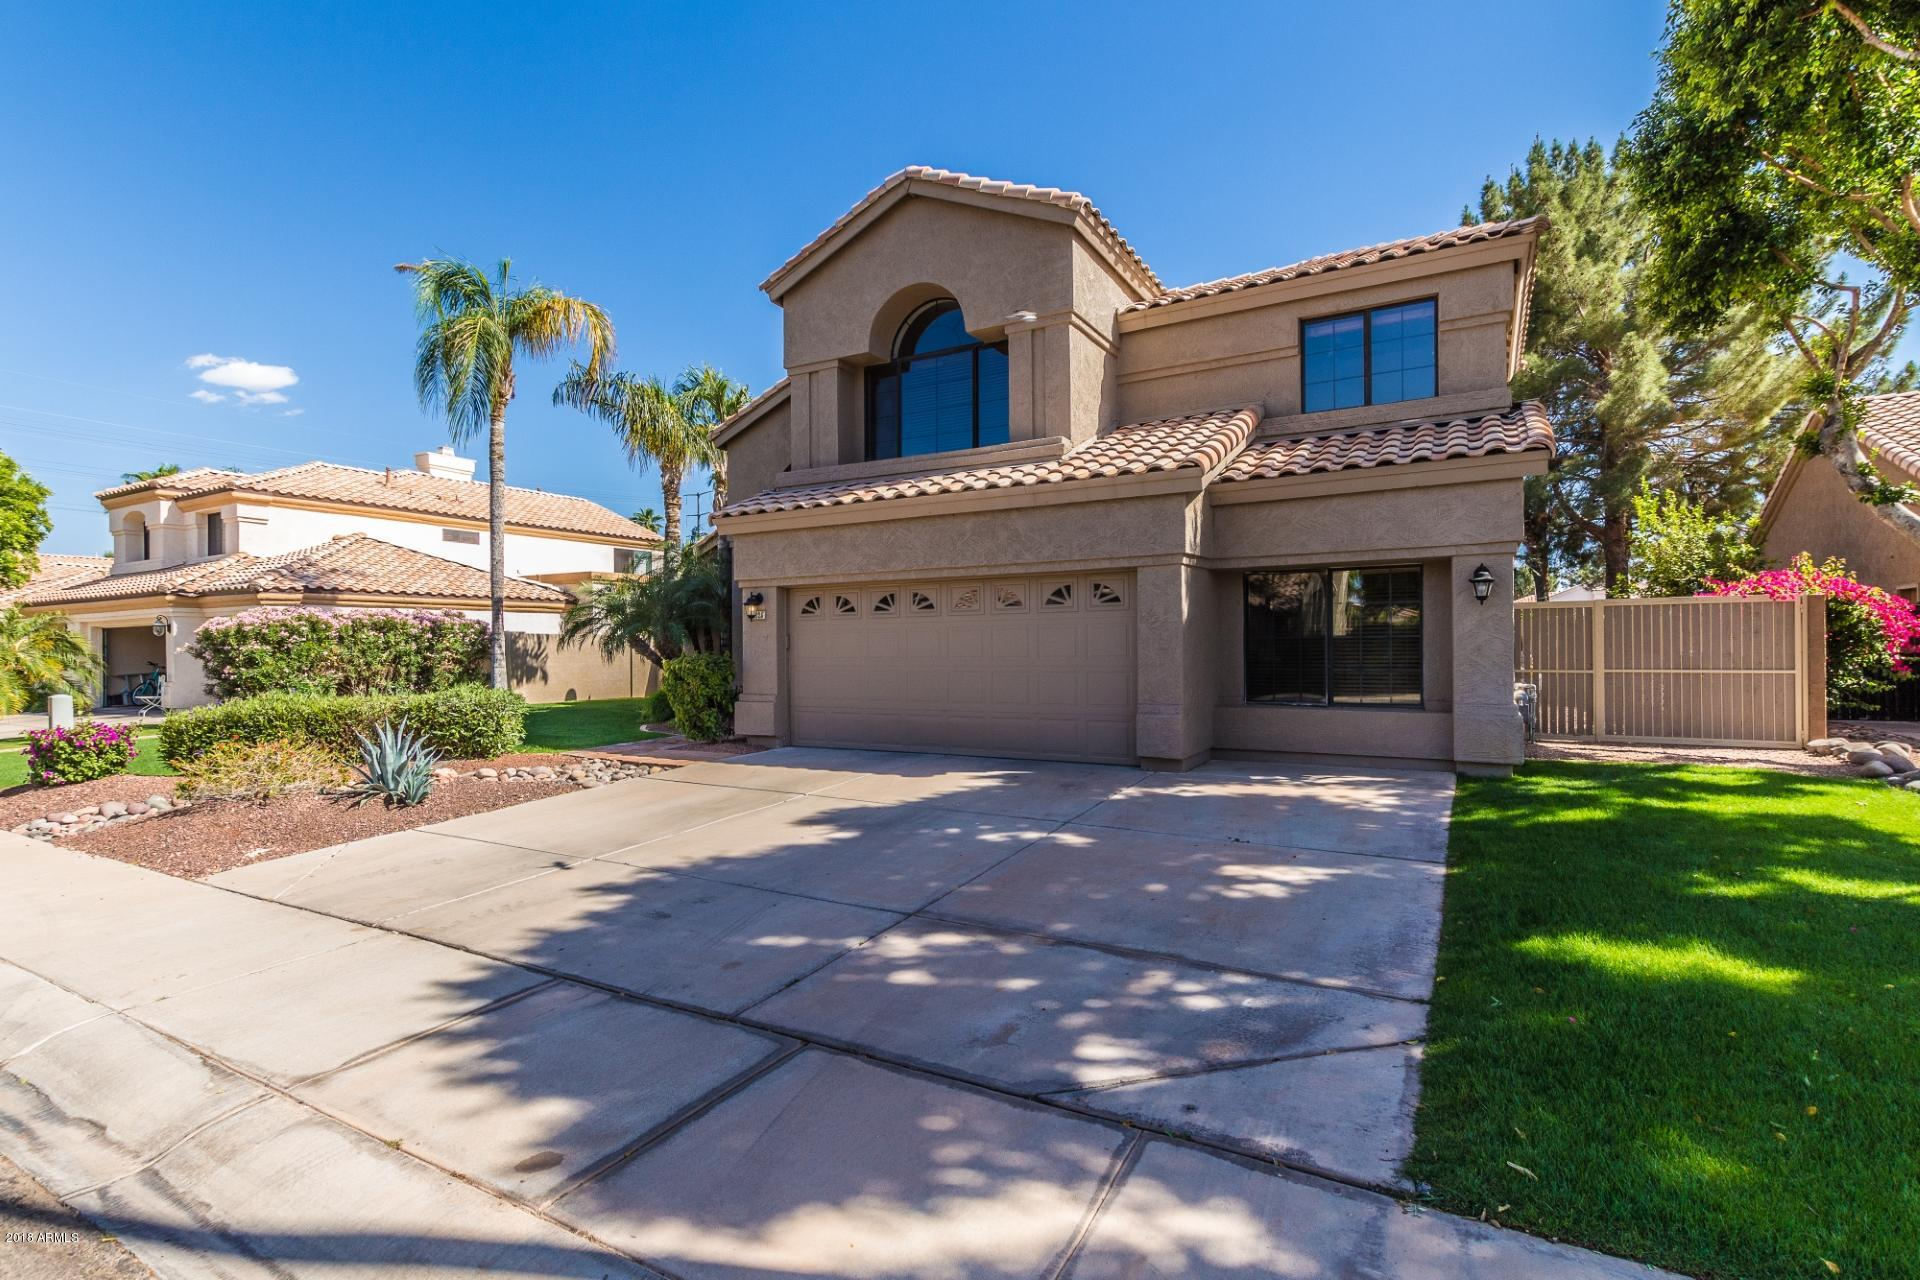 Photo of 1825 E MONARCH BAY Drive, Gilbert, AZ 85234